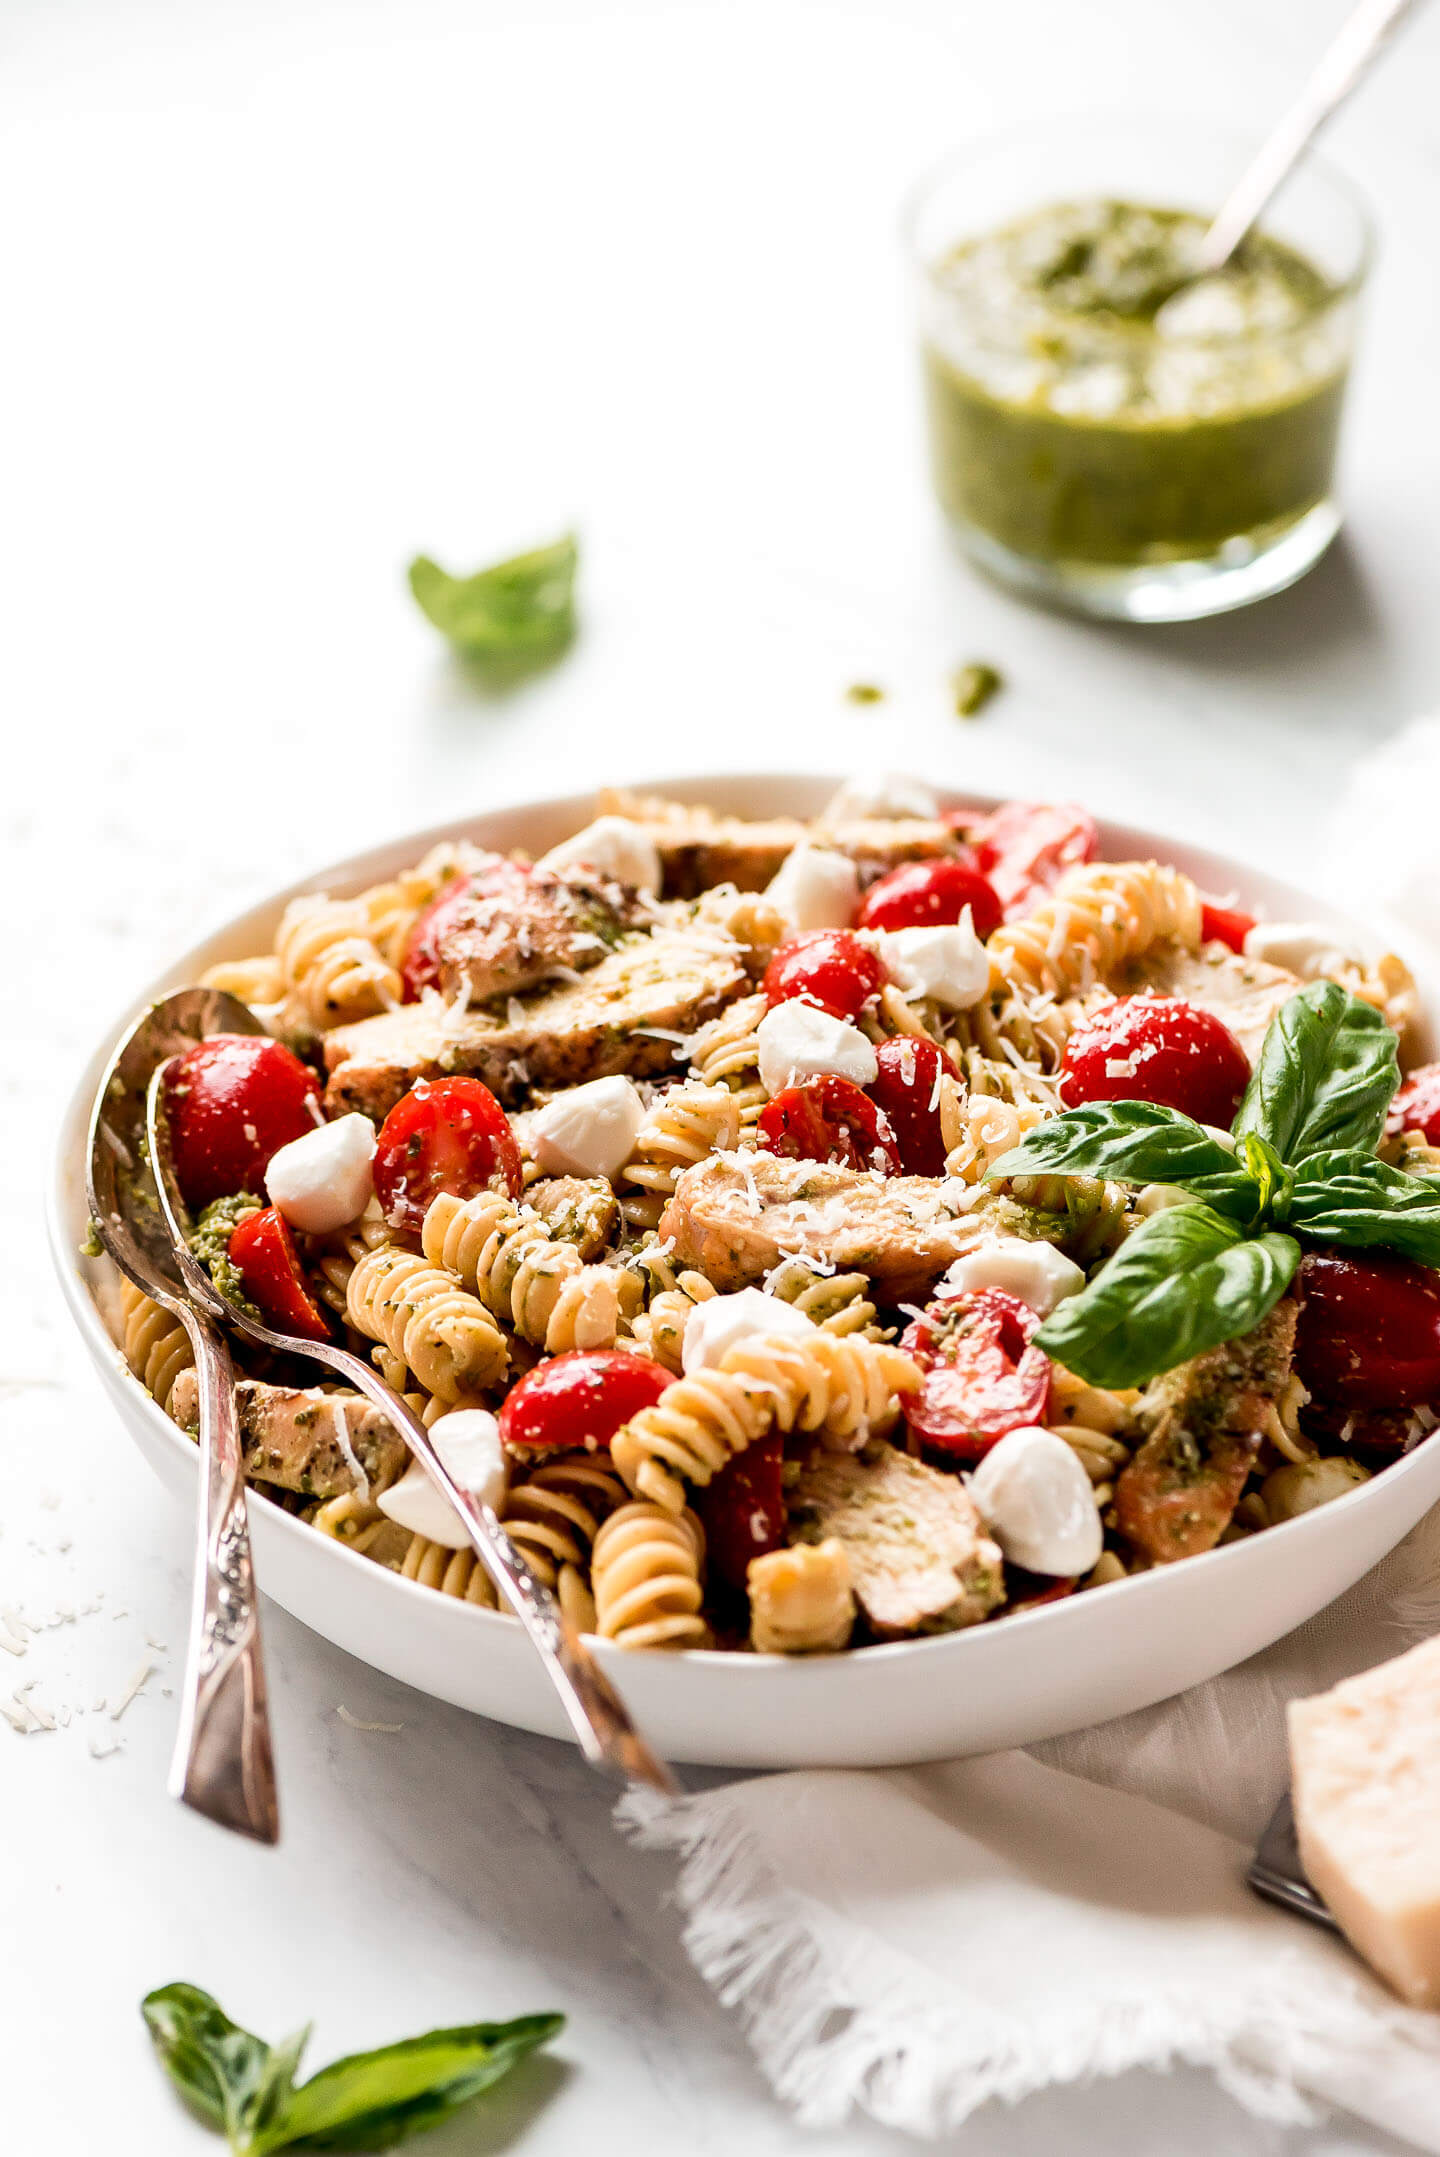 A serving bowl of pasta salad with chicken, tomatoes, mozzarella, and pesto.